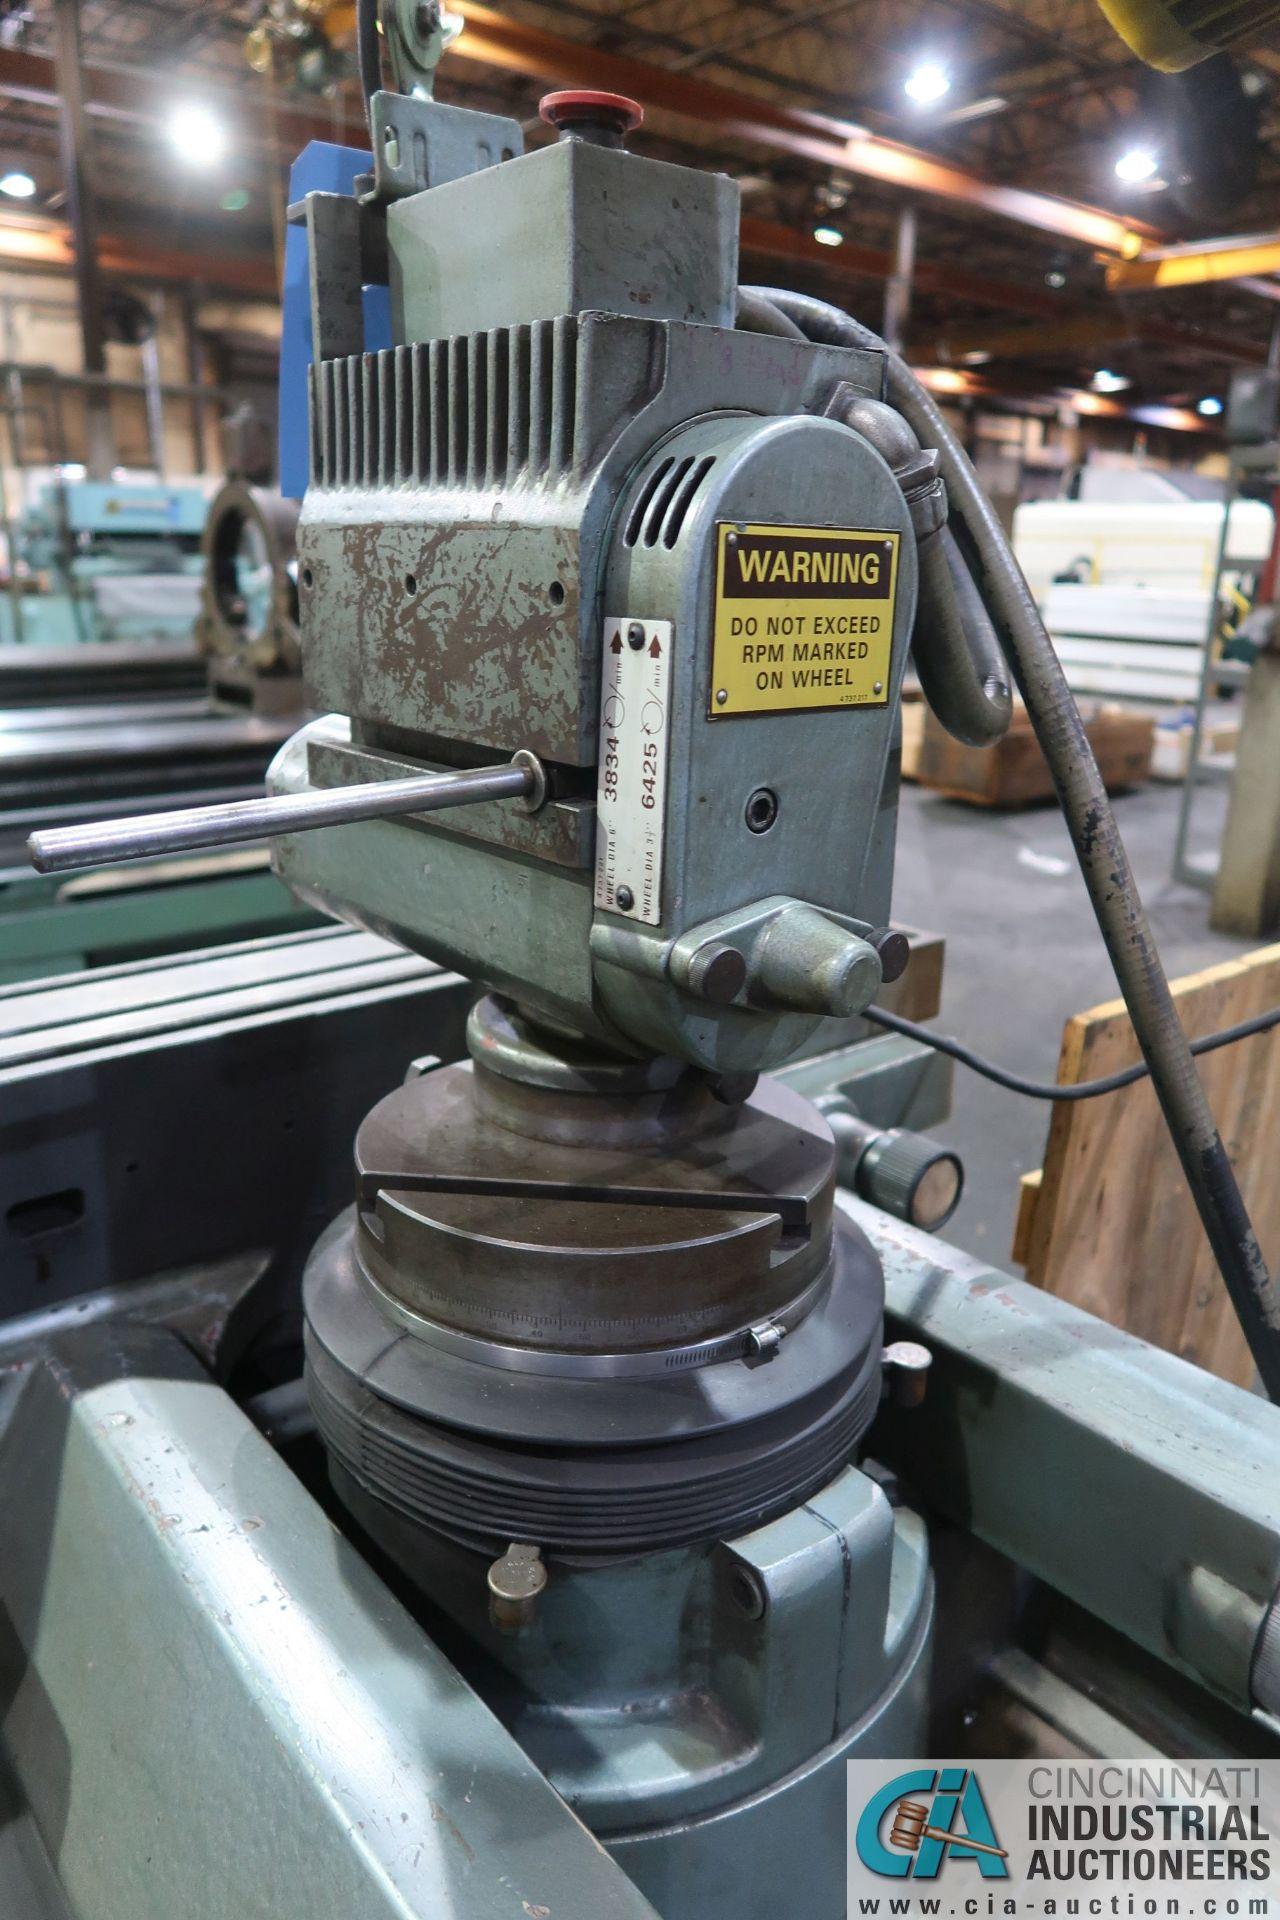 CINCINNATI TYPE MT TOOL GRINDER; S/N 1D2F1ABF-15, WITH (1) WOOD CRATE MISCELLANEOUS FIXTURES (NEW - Image 10 of 11